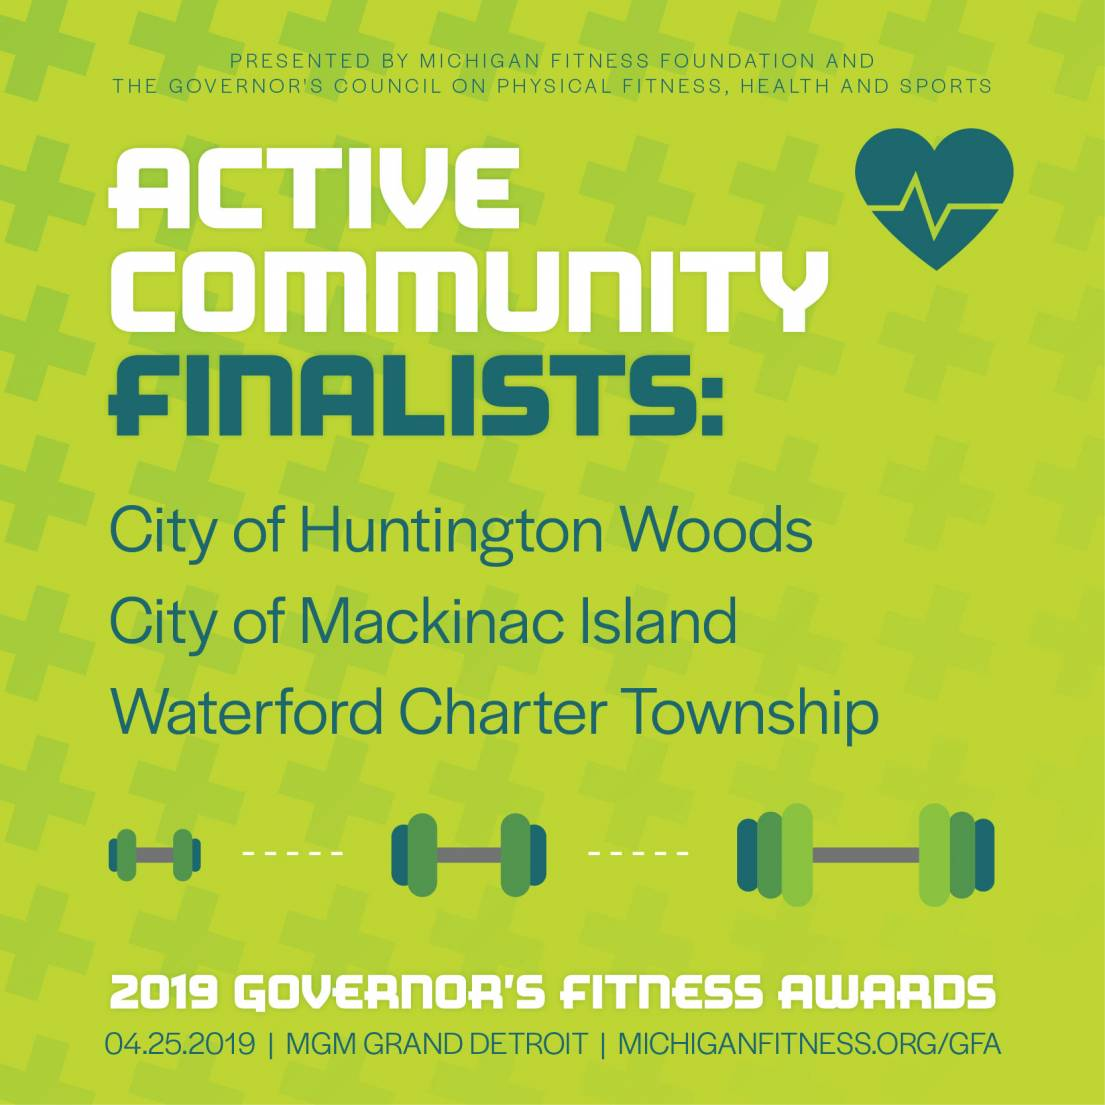 Governor's Fitness Awards - Active Community Award Finalists